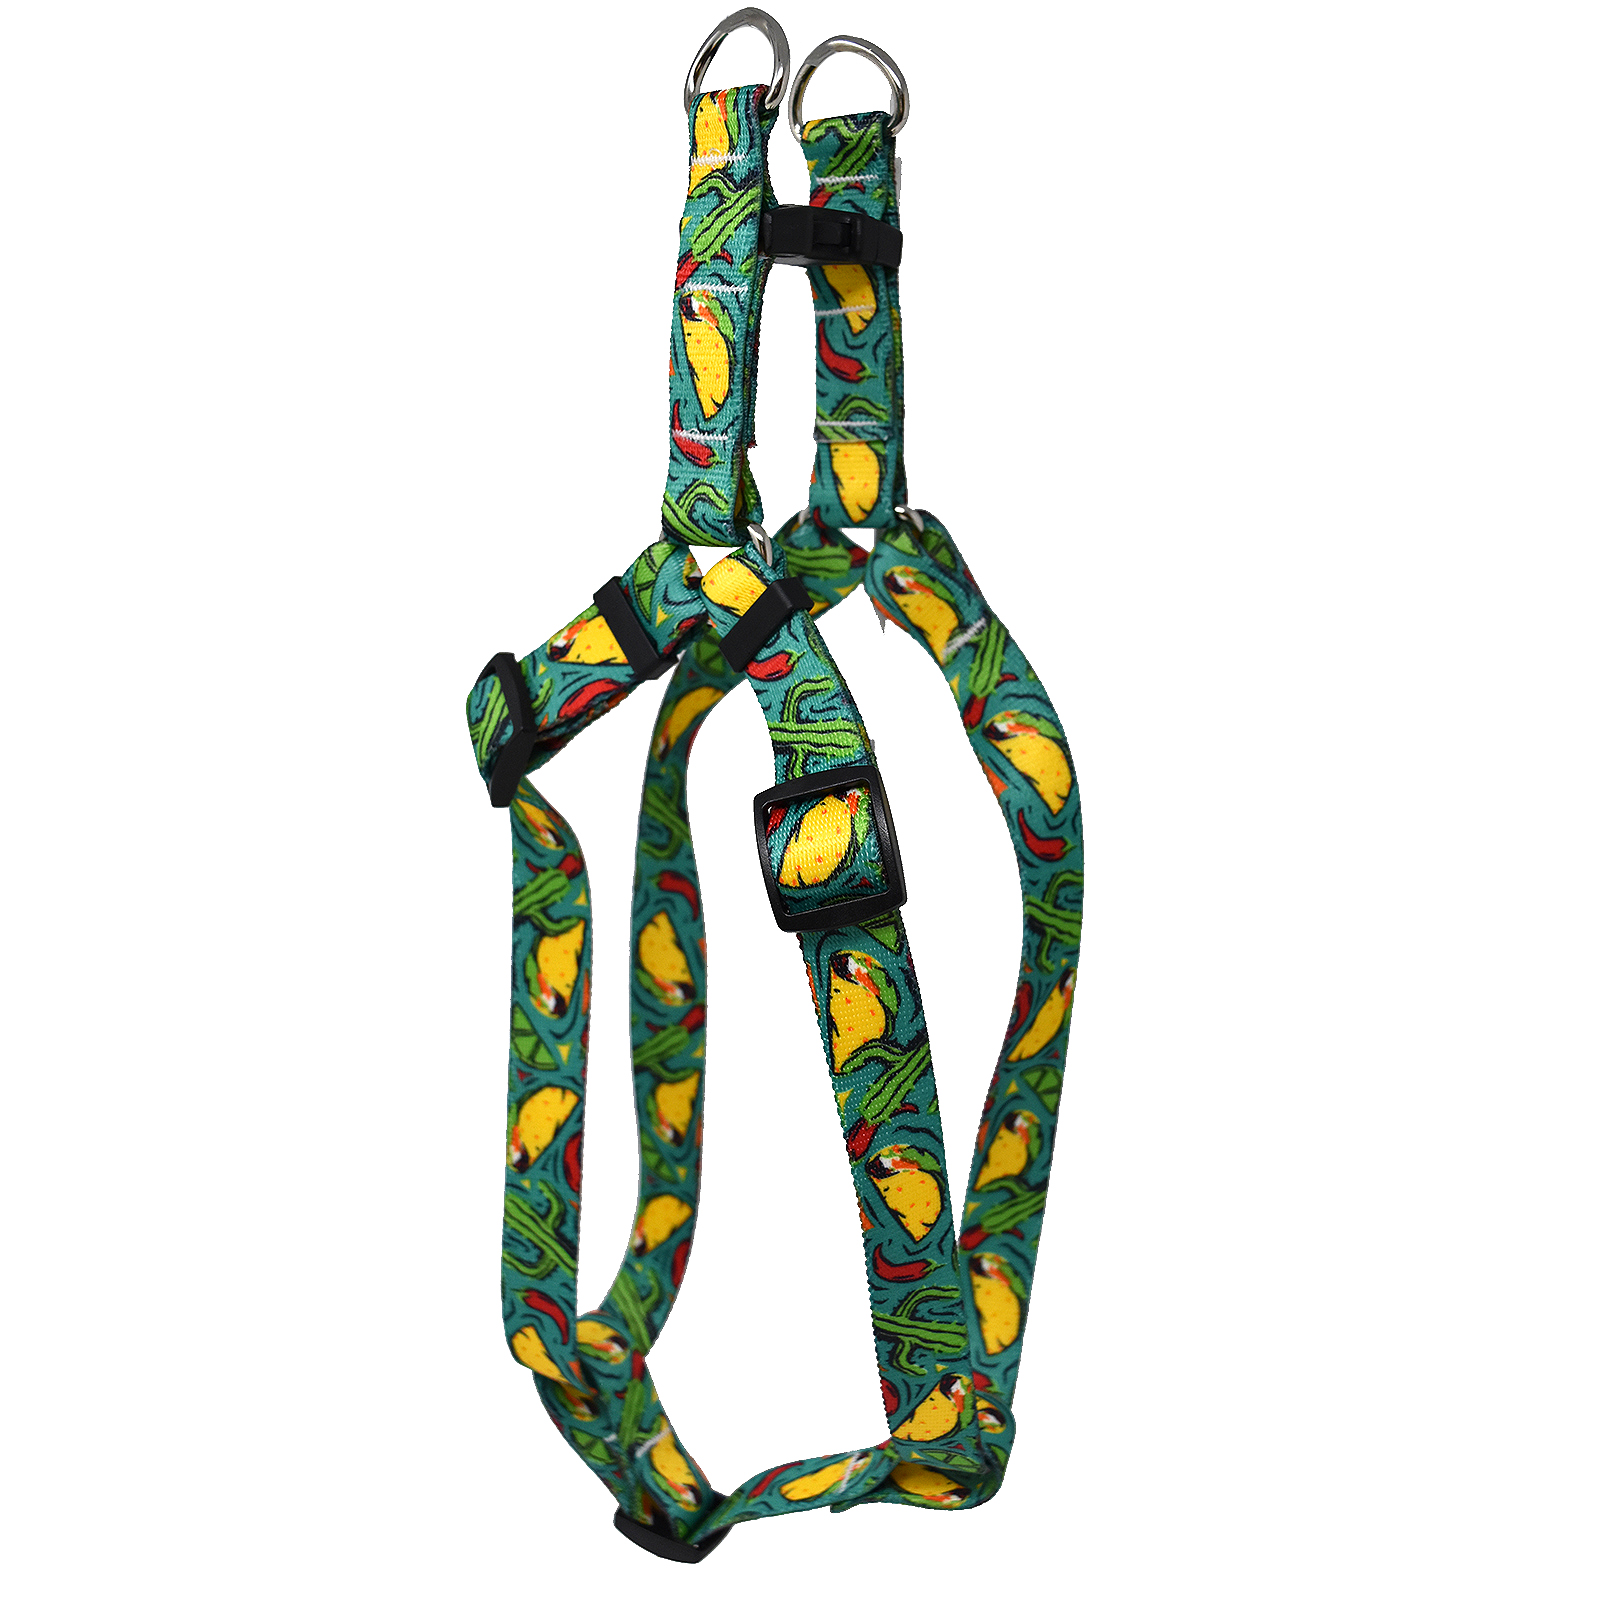 Taco Fiesta Teal  Step-In Harness